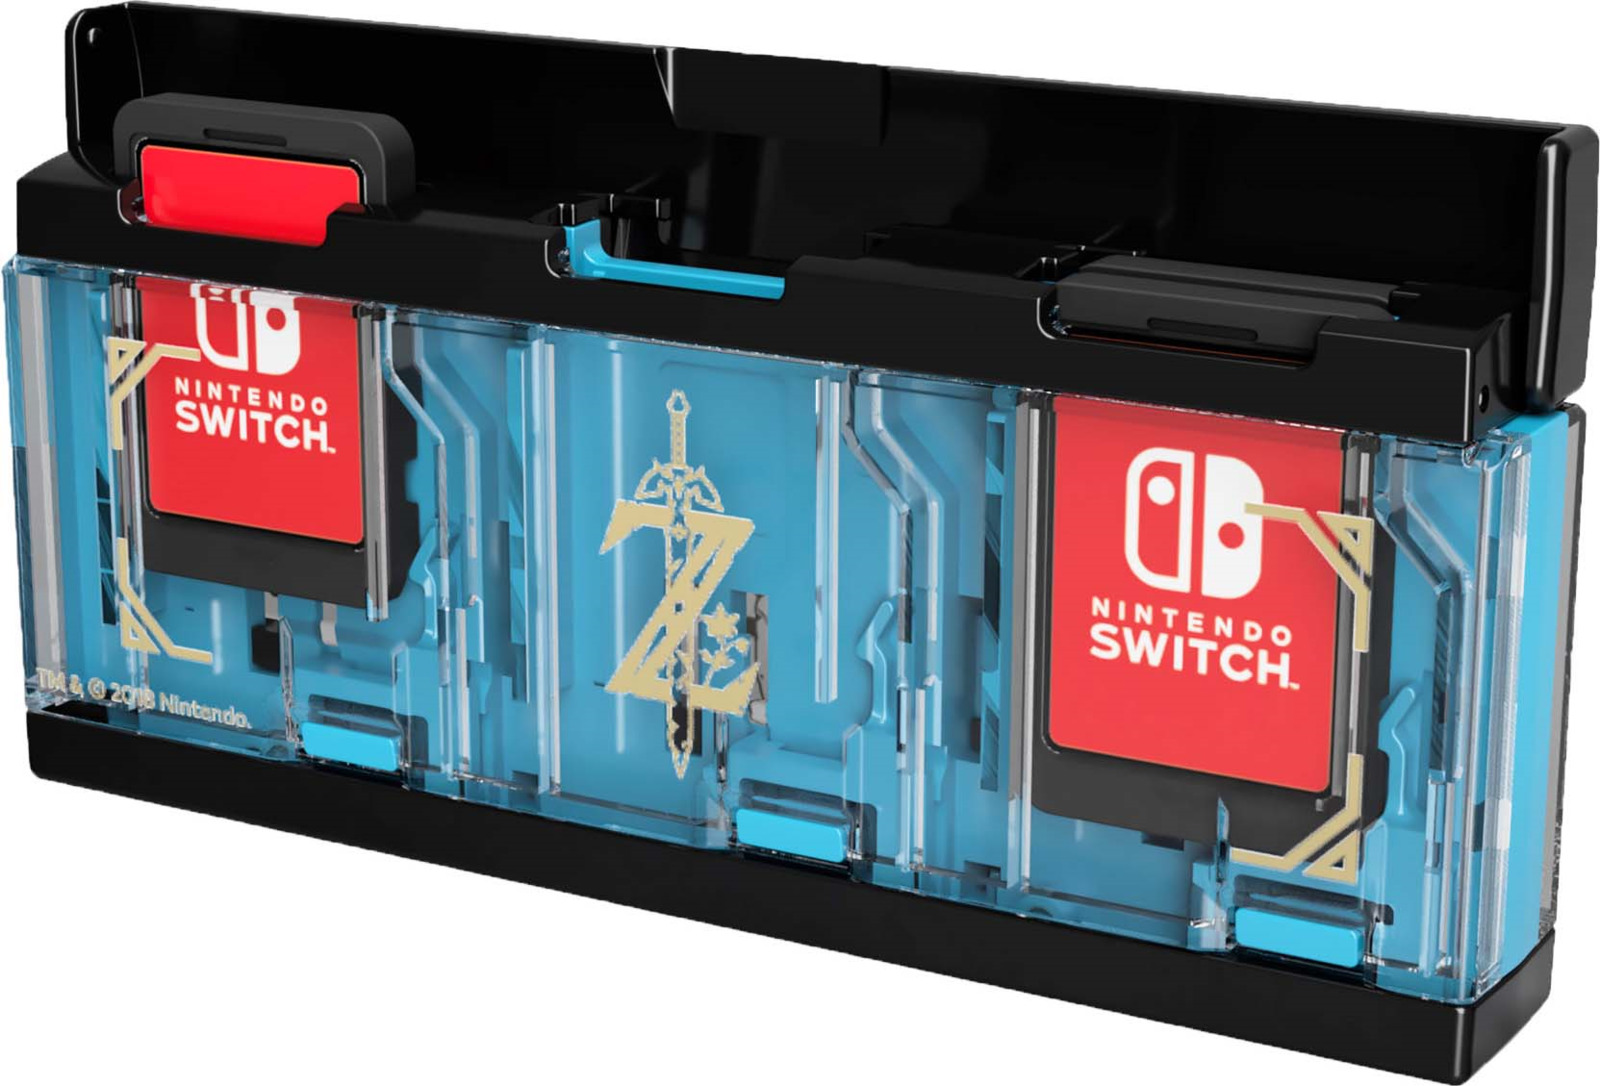 Кейс для хранения игровых карт Hori Zelda, для консоли Nintendo Switch, NSW-097U чехол hori nsw 074u для nintendo switch